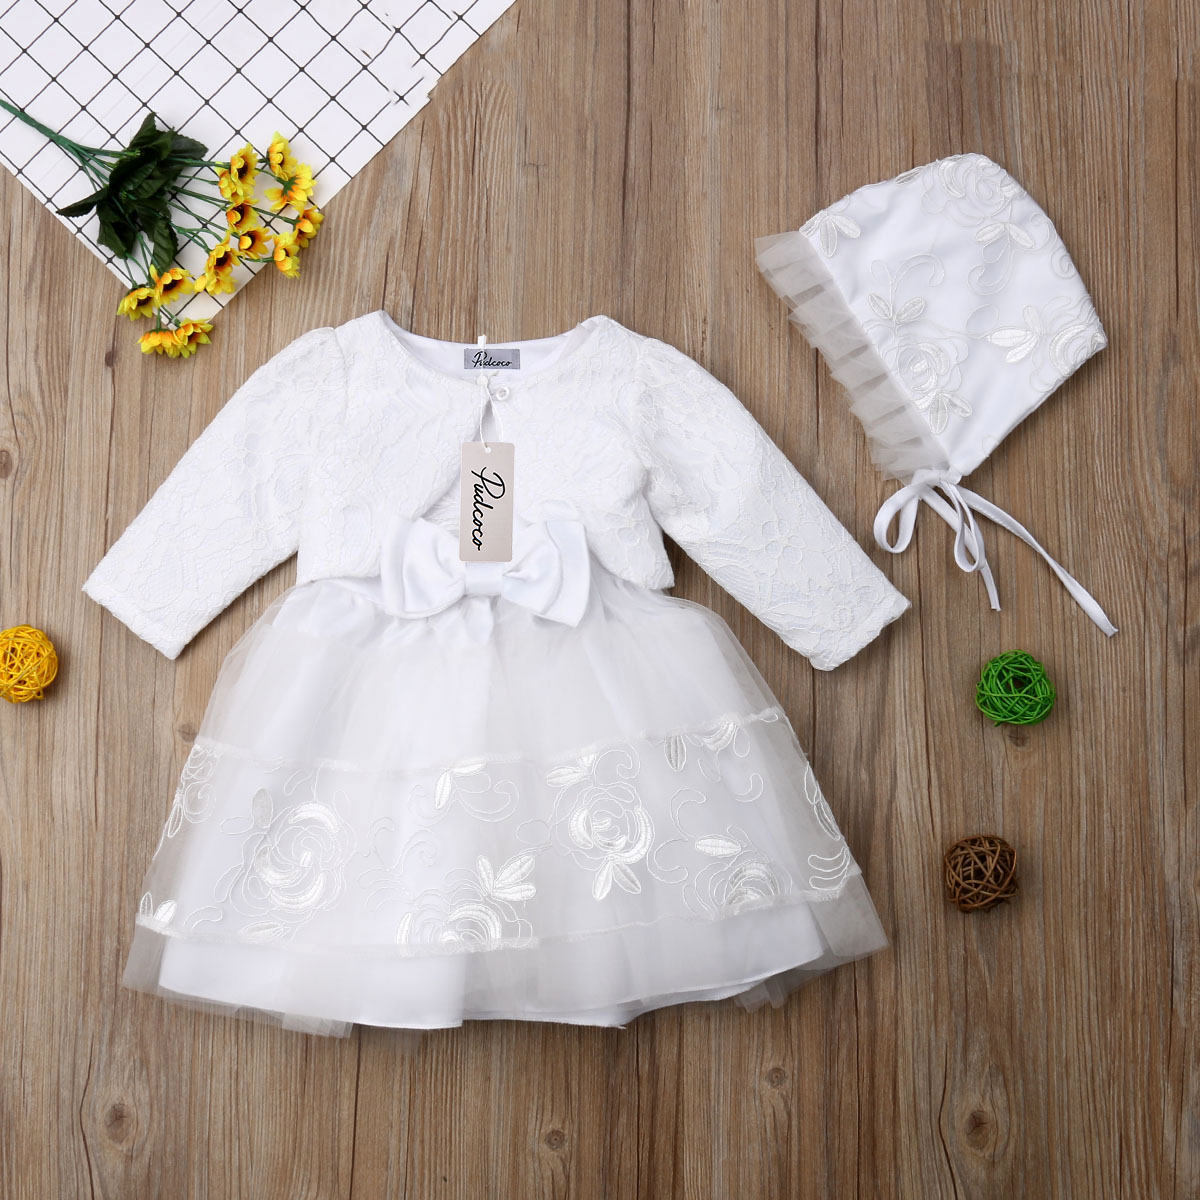 Newbron Lace Clothing Set Casual Princess Baby Girls Dress Flower Christening Wedding Party Kids Clothes in Dresses from Mother Kids